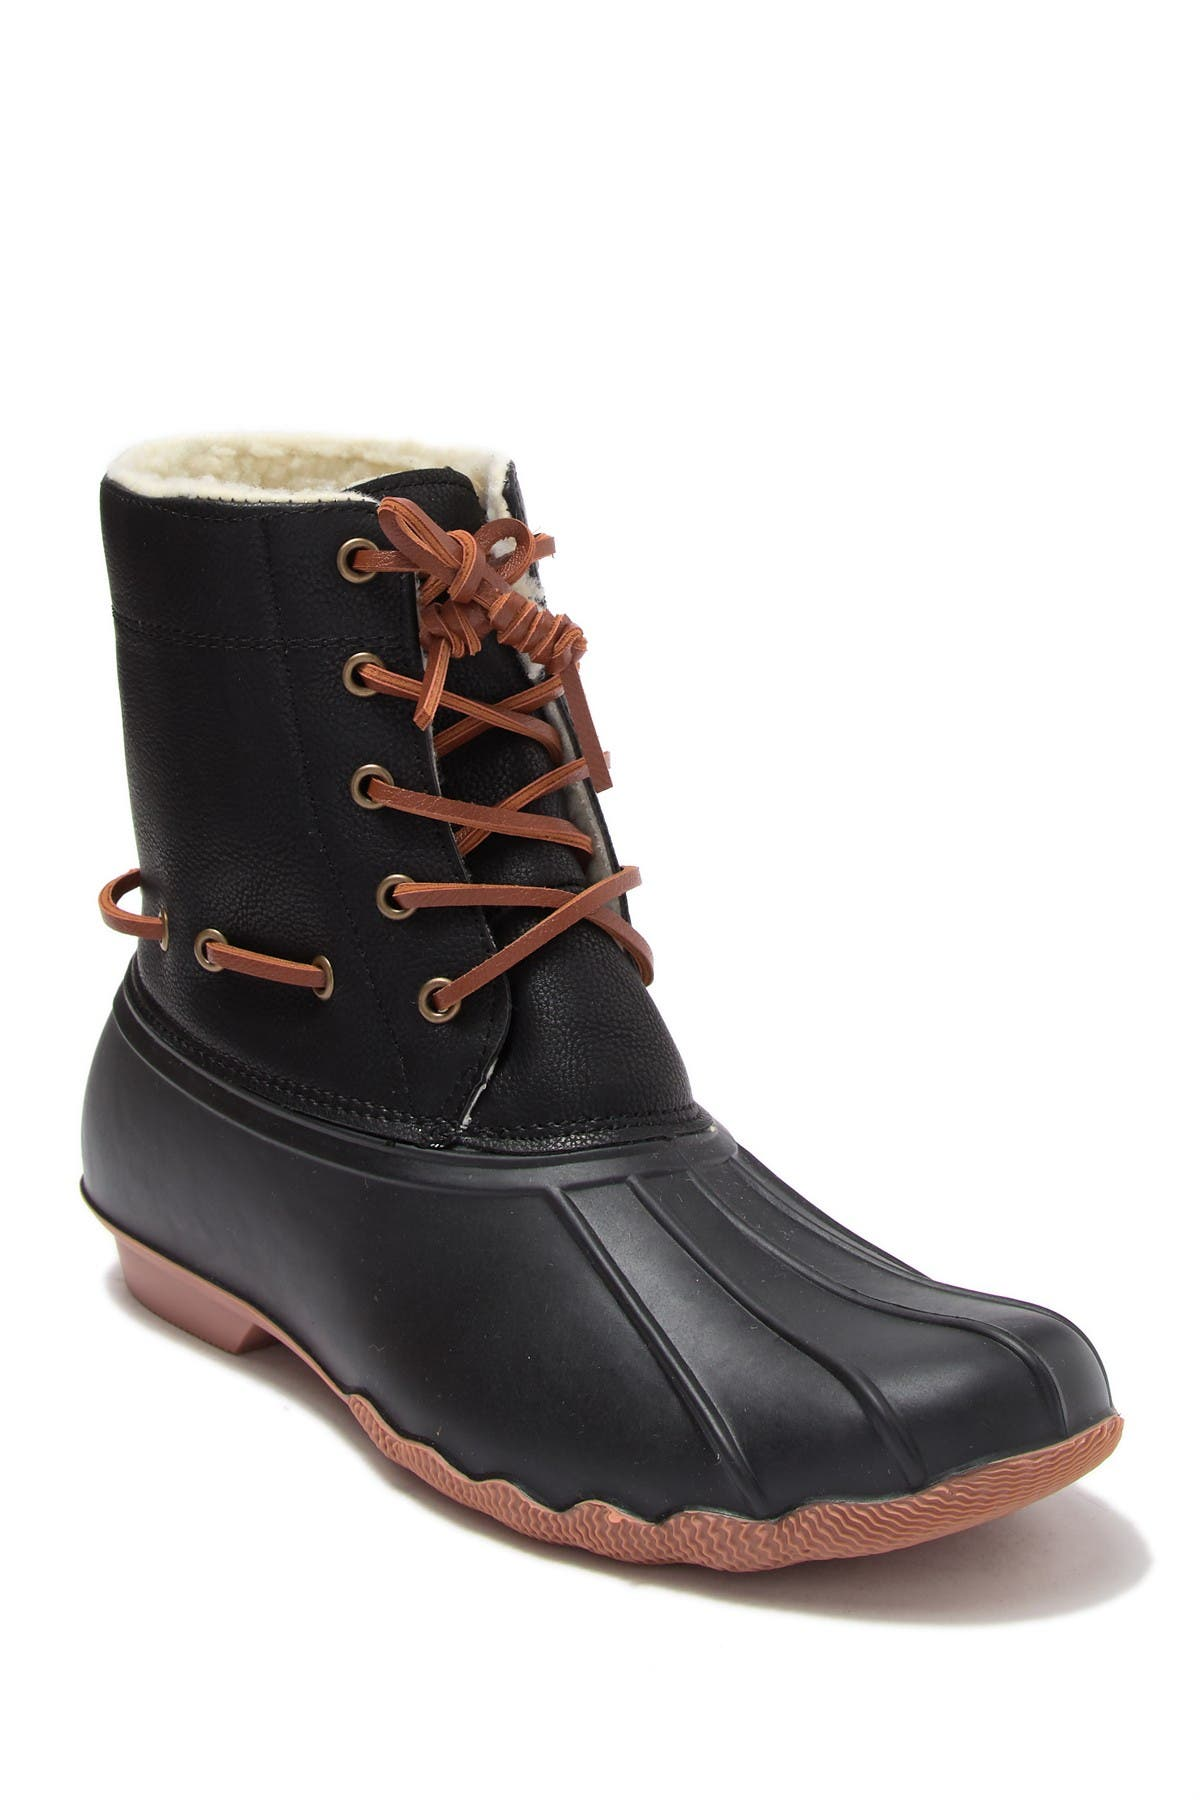 Image of Seven7 Hollis Faux Fur Lined Duck Boot